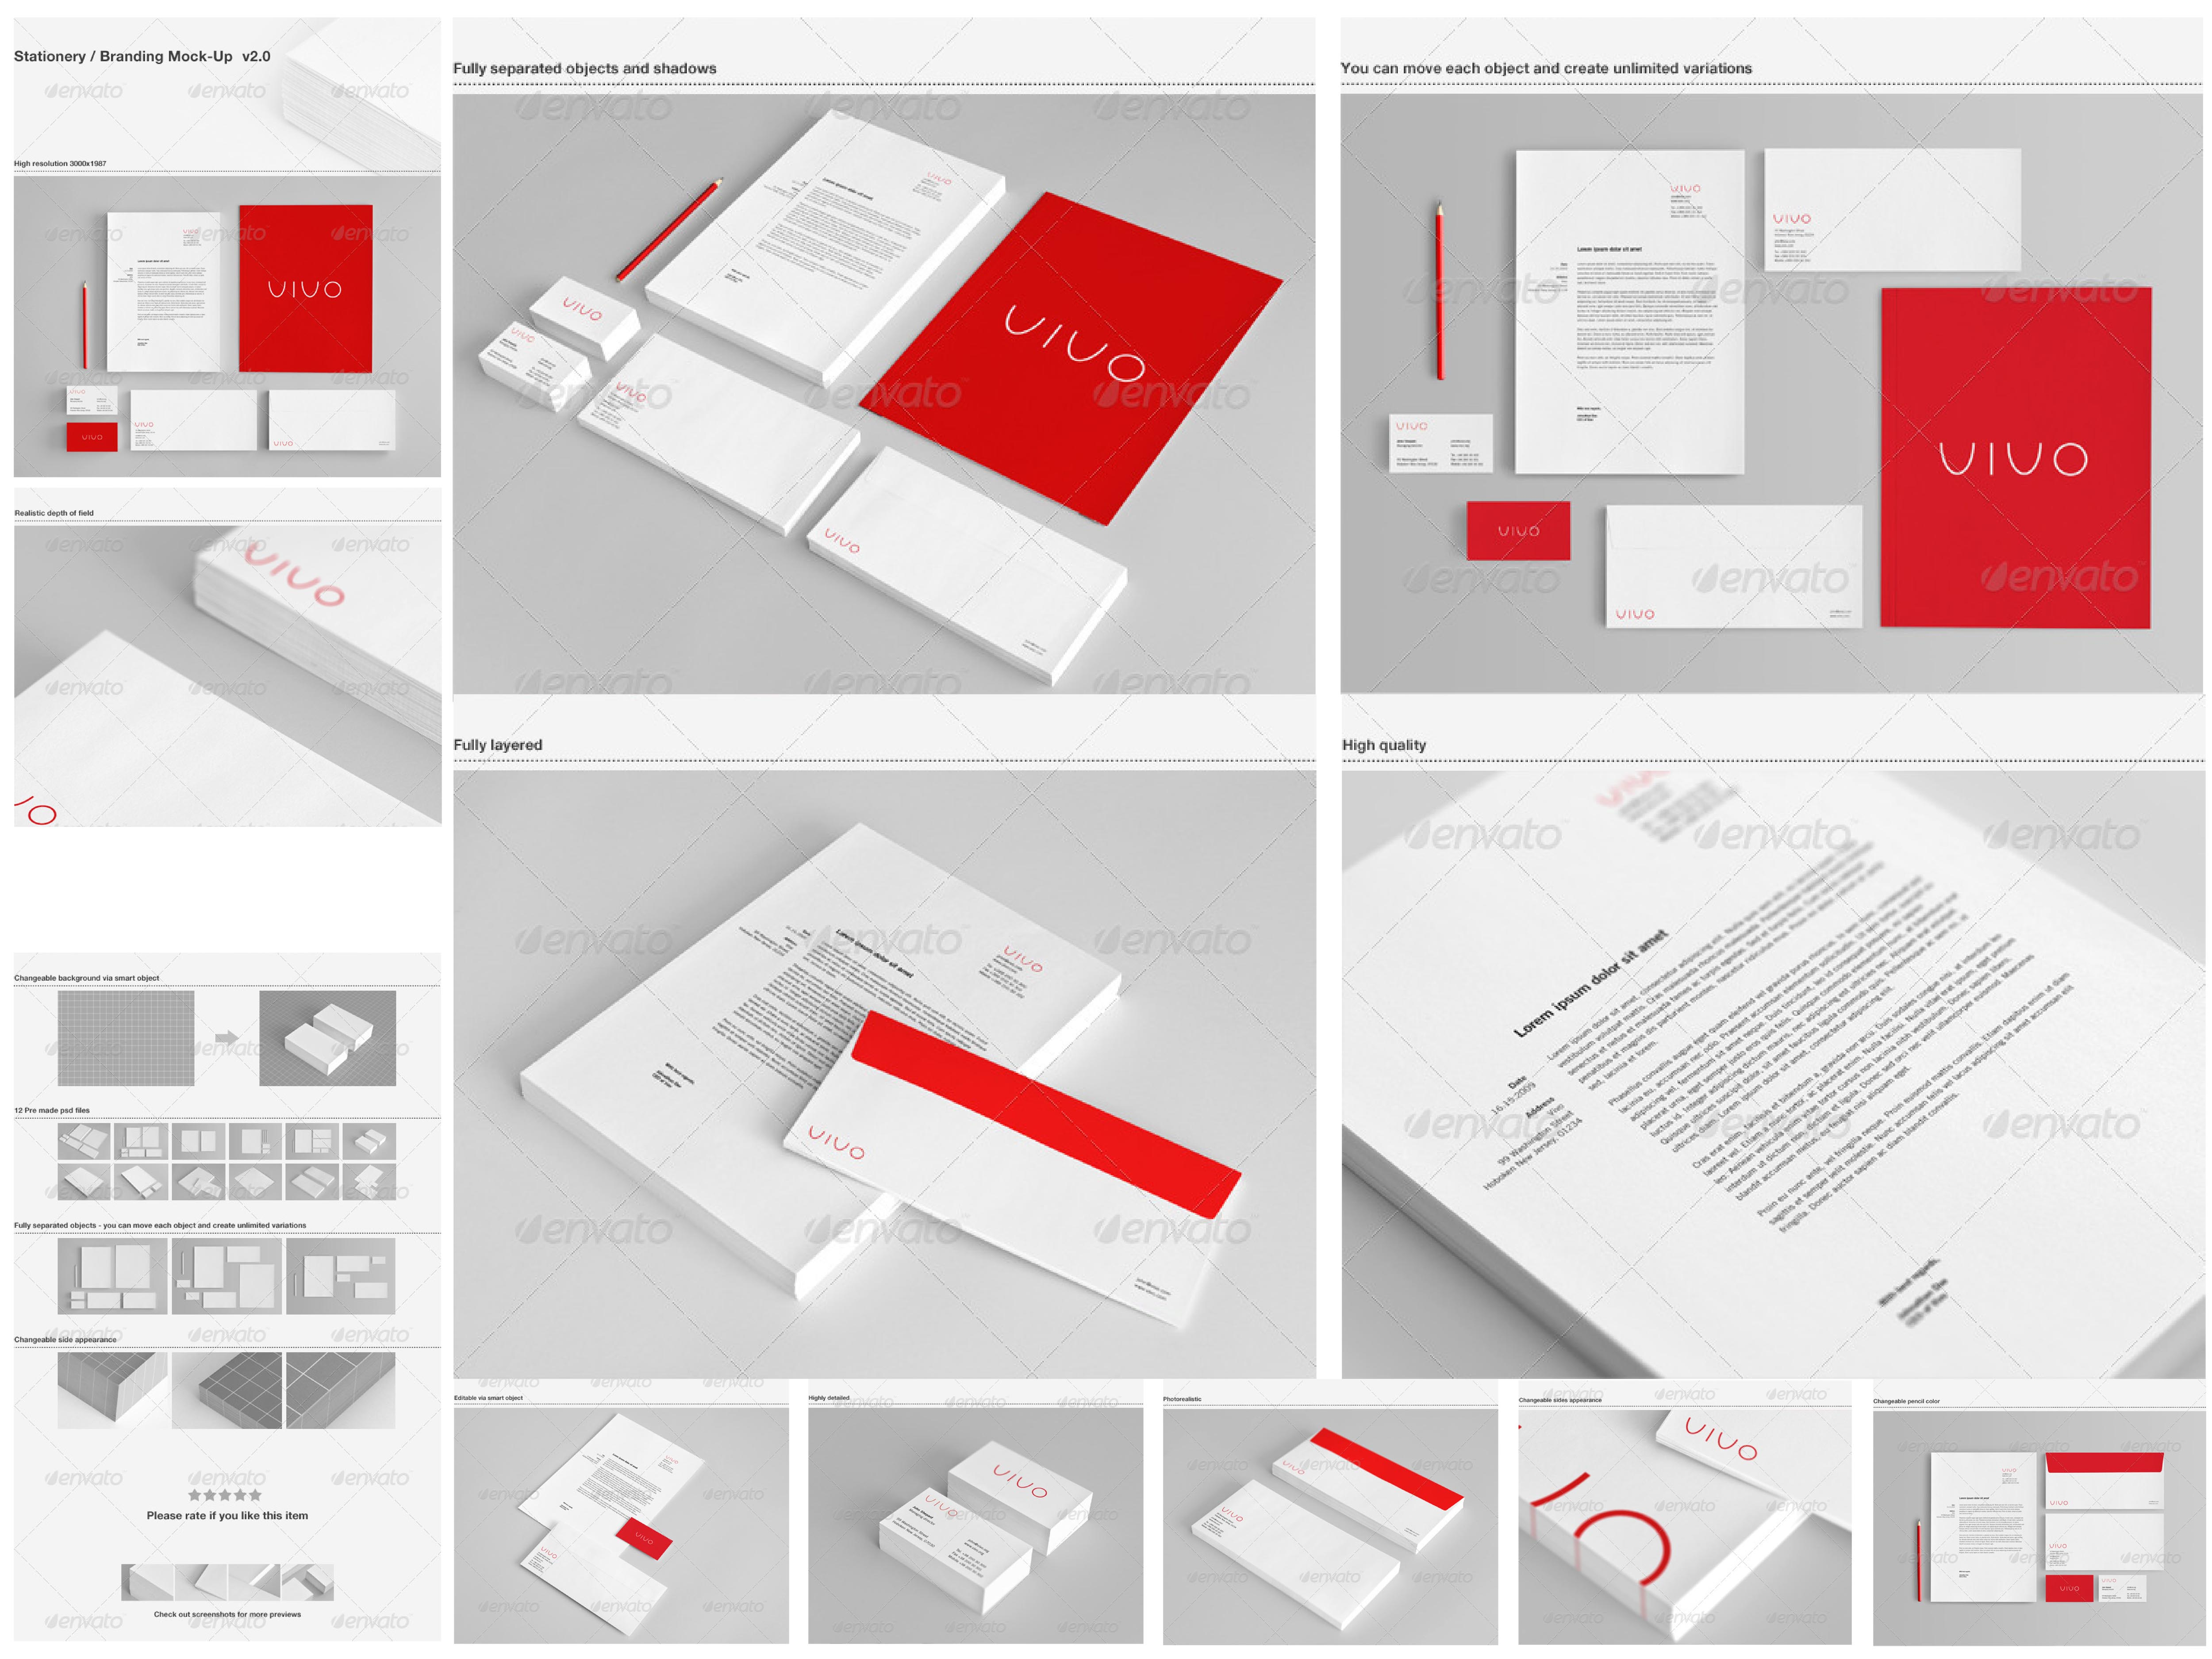 Corporate stationery psd mockups for branding identity psd mockups for Stationery templates psd